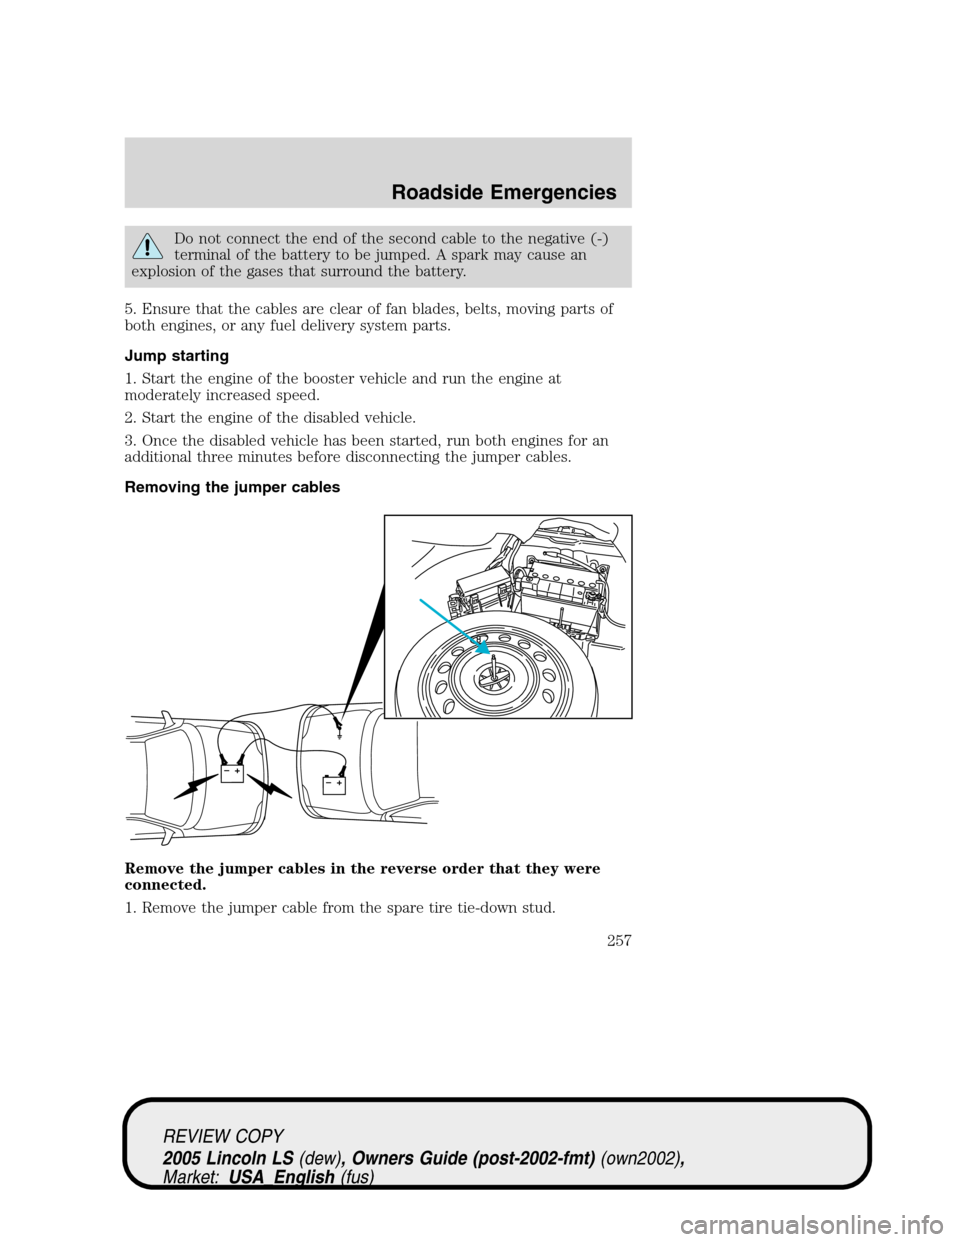 Lincoln Ls 2005 Owners Manual 2002 Engine Rebuild Diagram